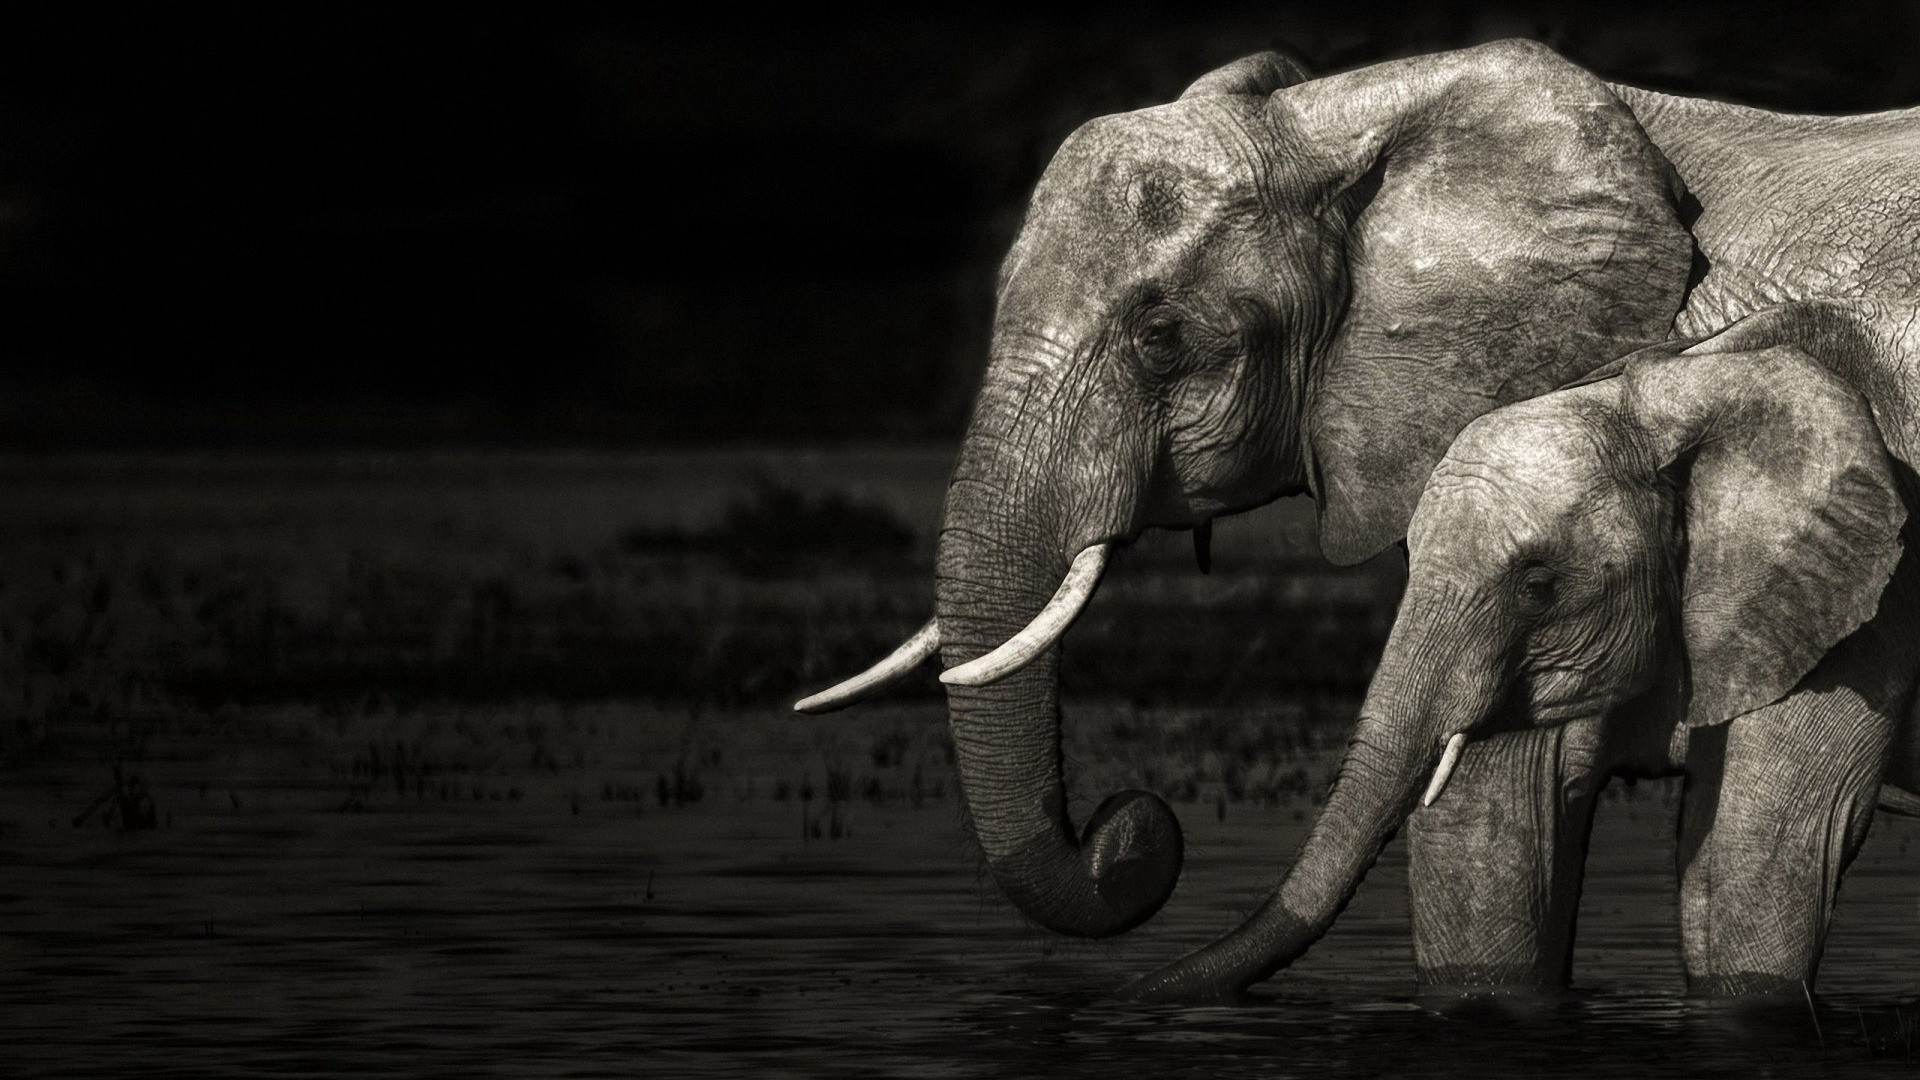 Cute Elephant Cartoon Wallpapers Desktop Elephant Hd Wallpapers Pixelstalk Net